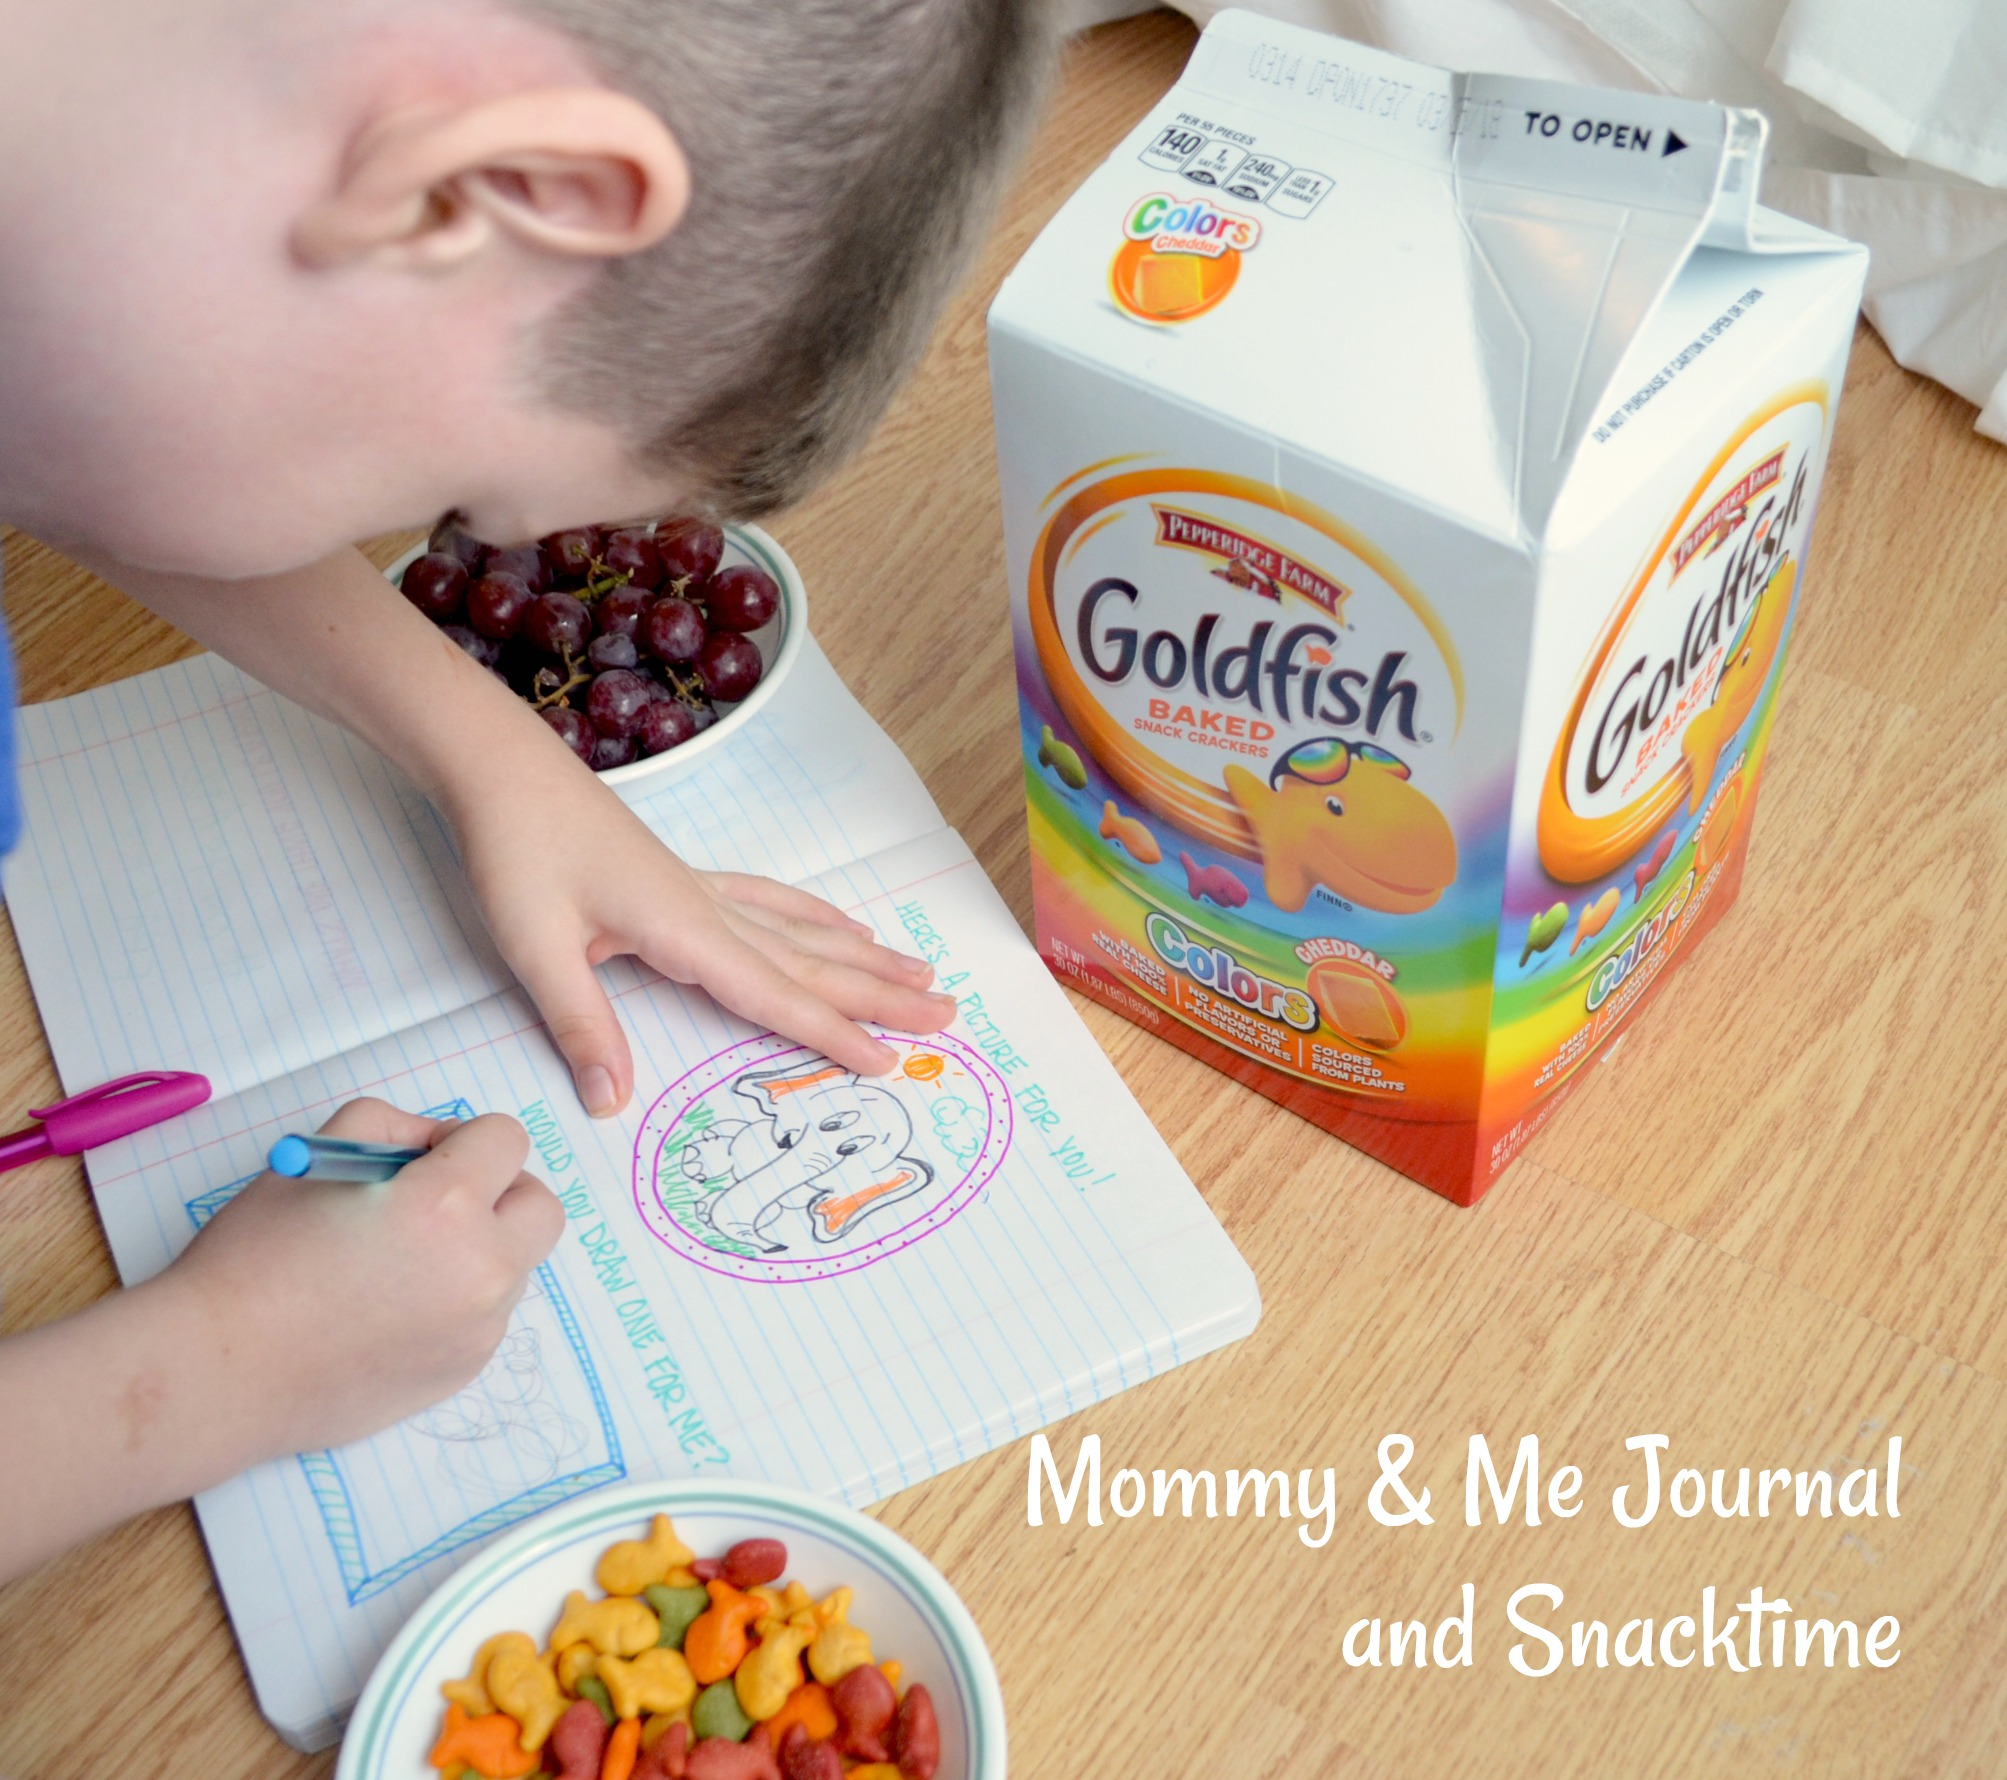 Mommy & Me Journal